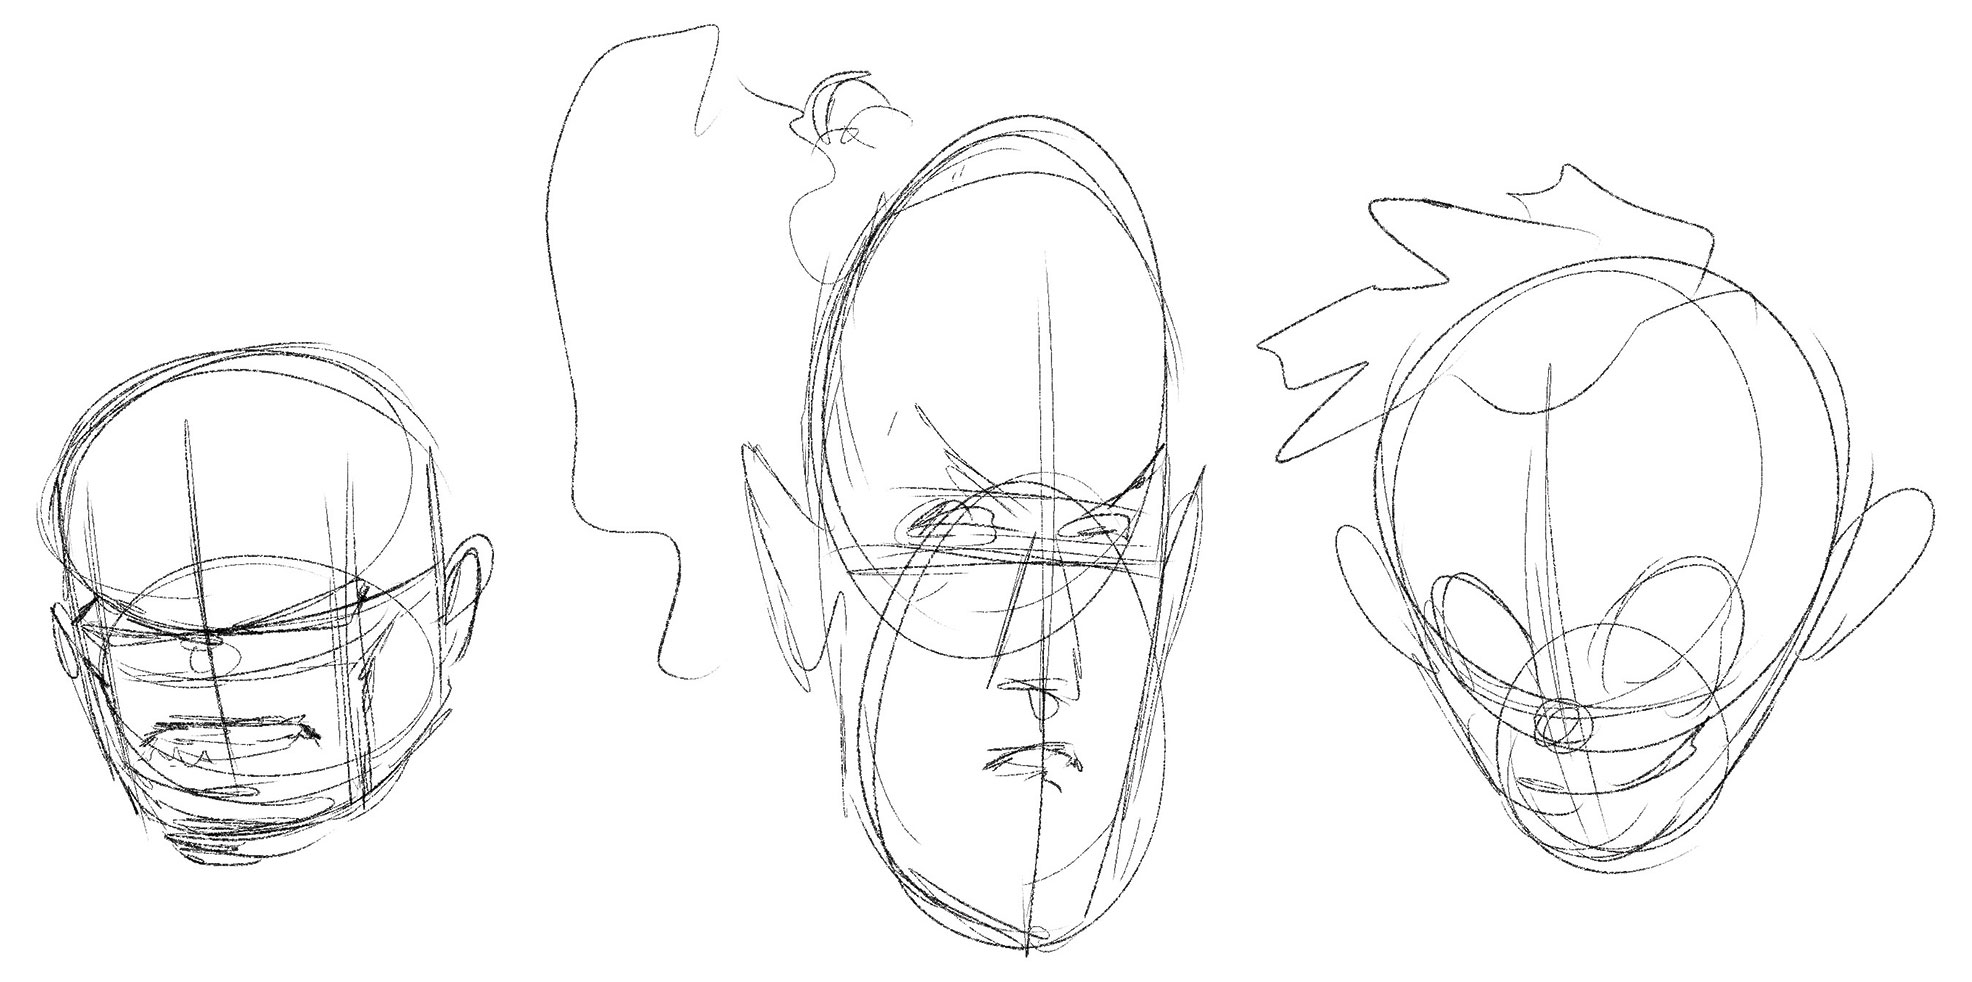 Three heads based on circles of varying proportions